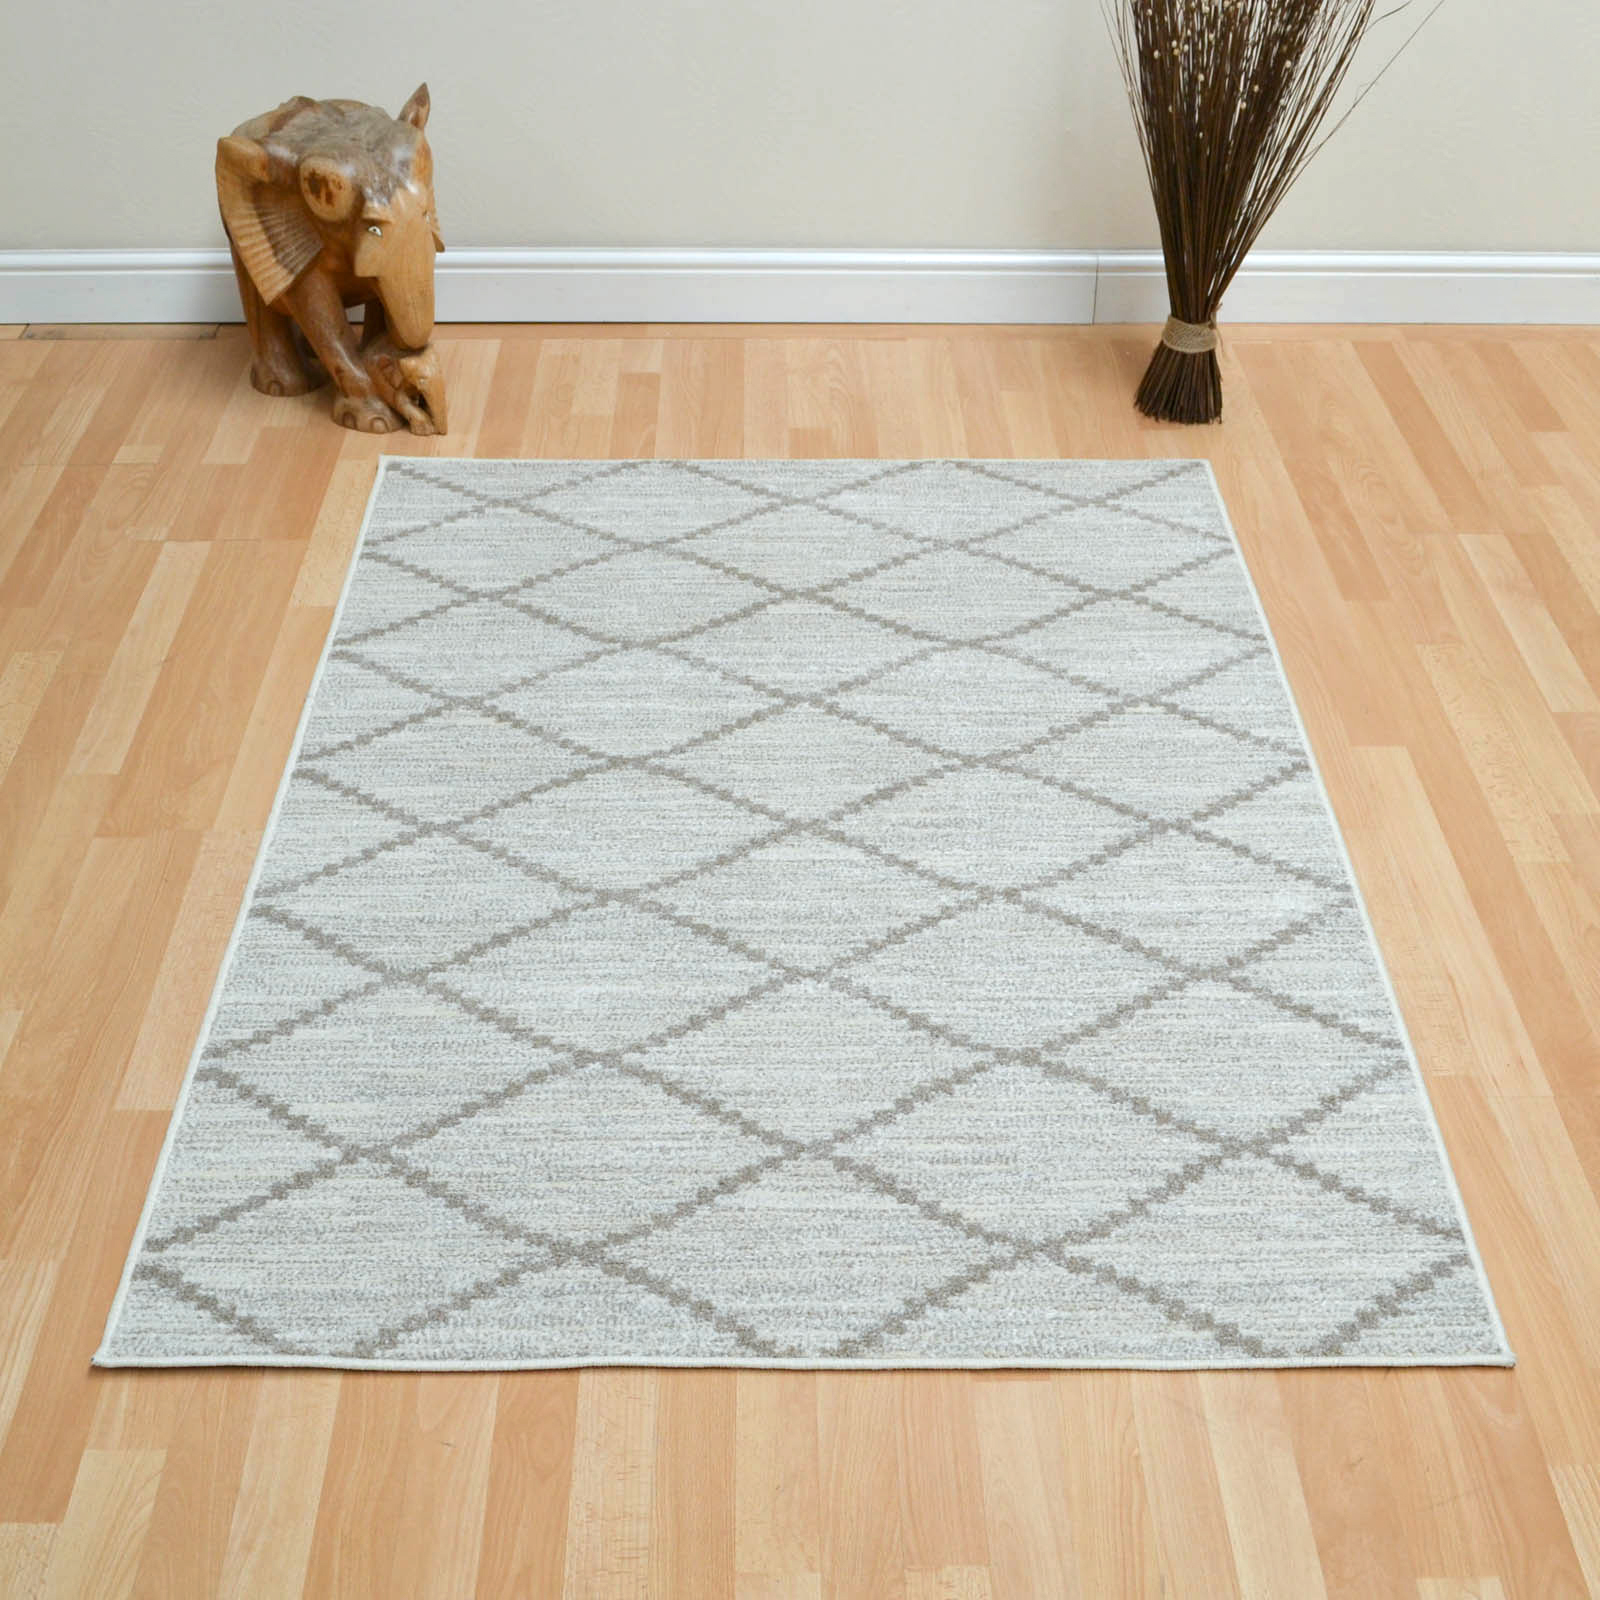 Tibet Diamond Rugs in Taupe